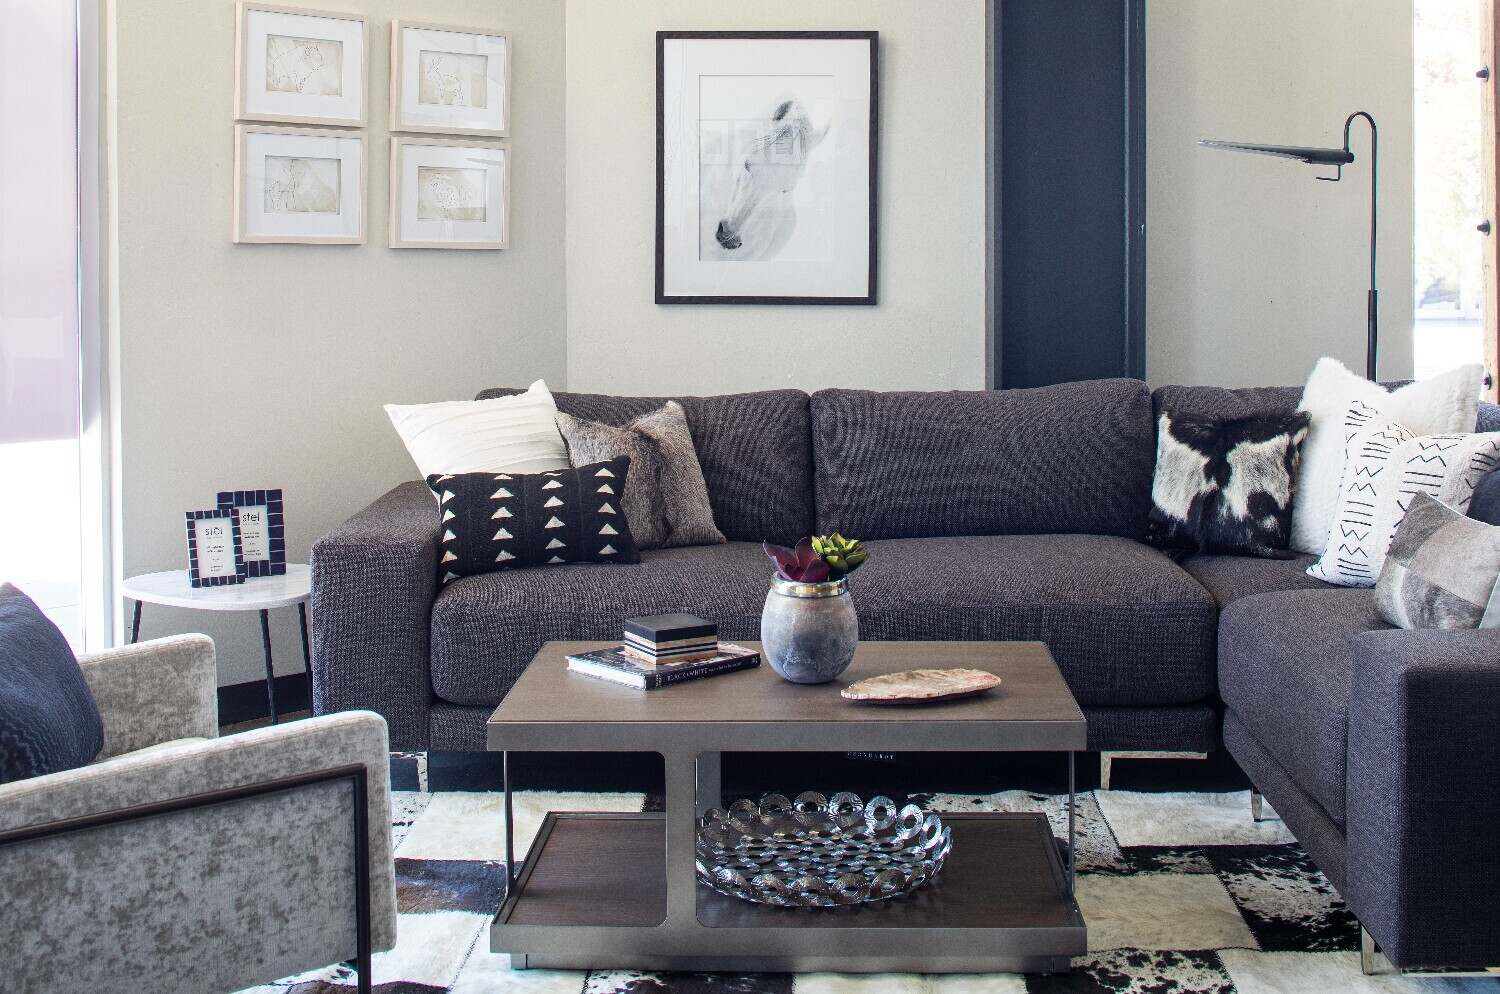 stel-house-and-home-steamboat-interiors-showroom-eclectic-furniture